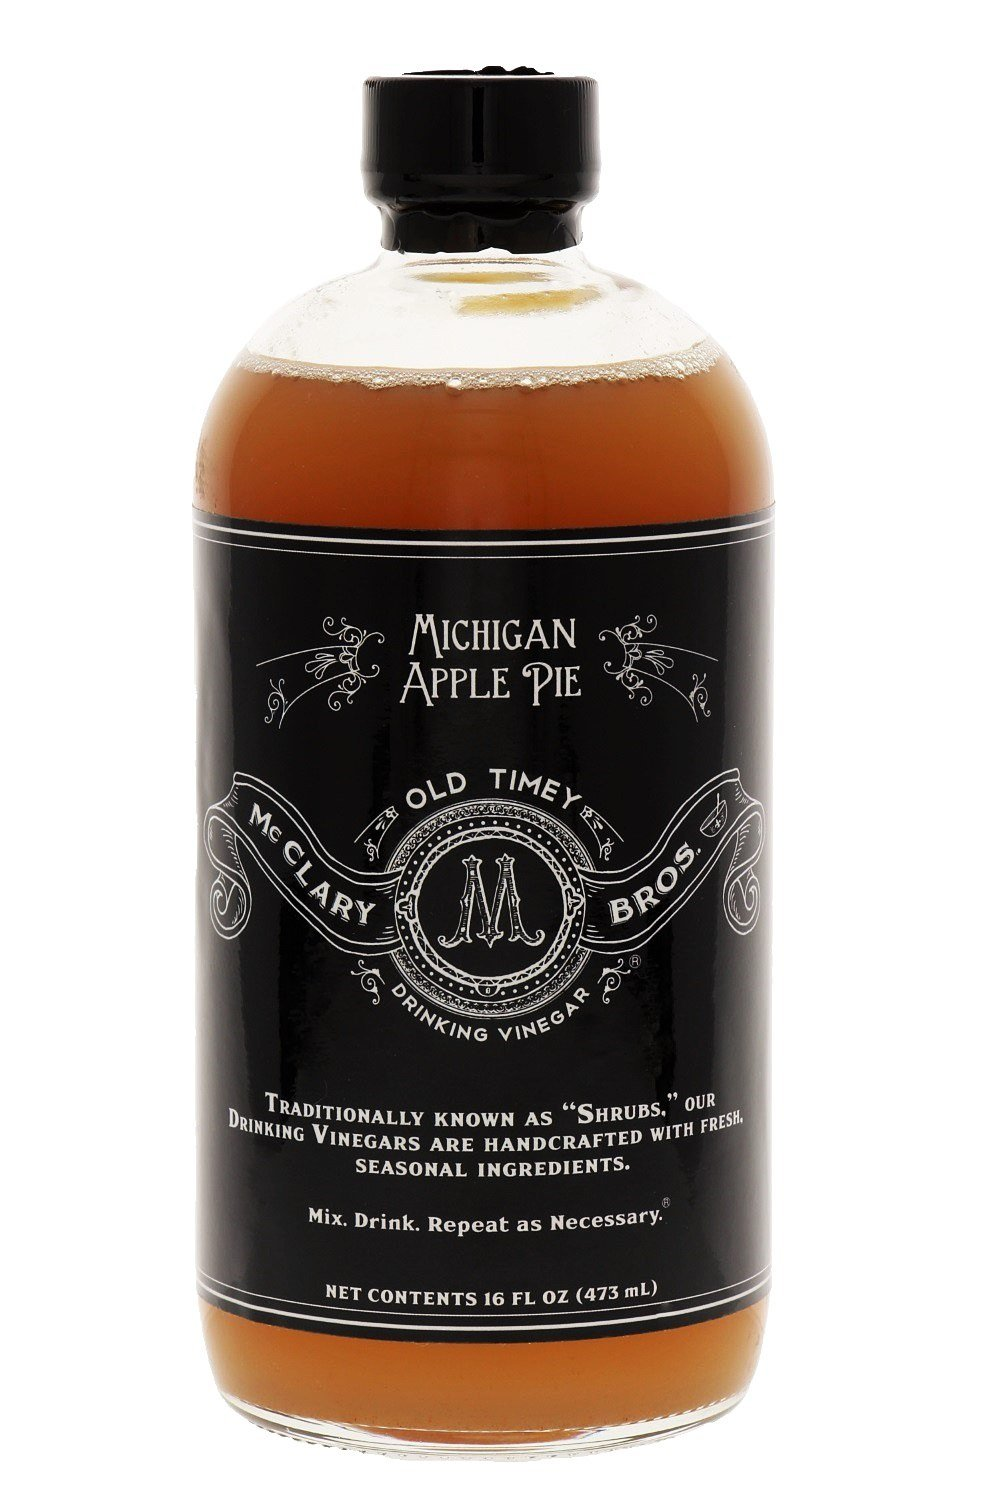 McClary Bros Drinking Vinegars, Michigan Apple Pie